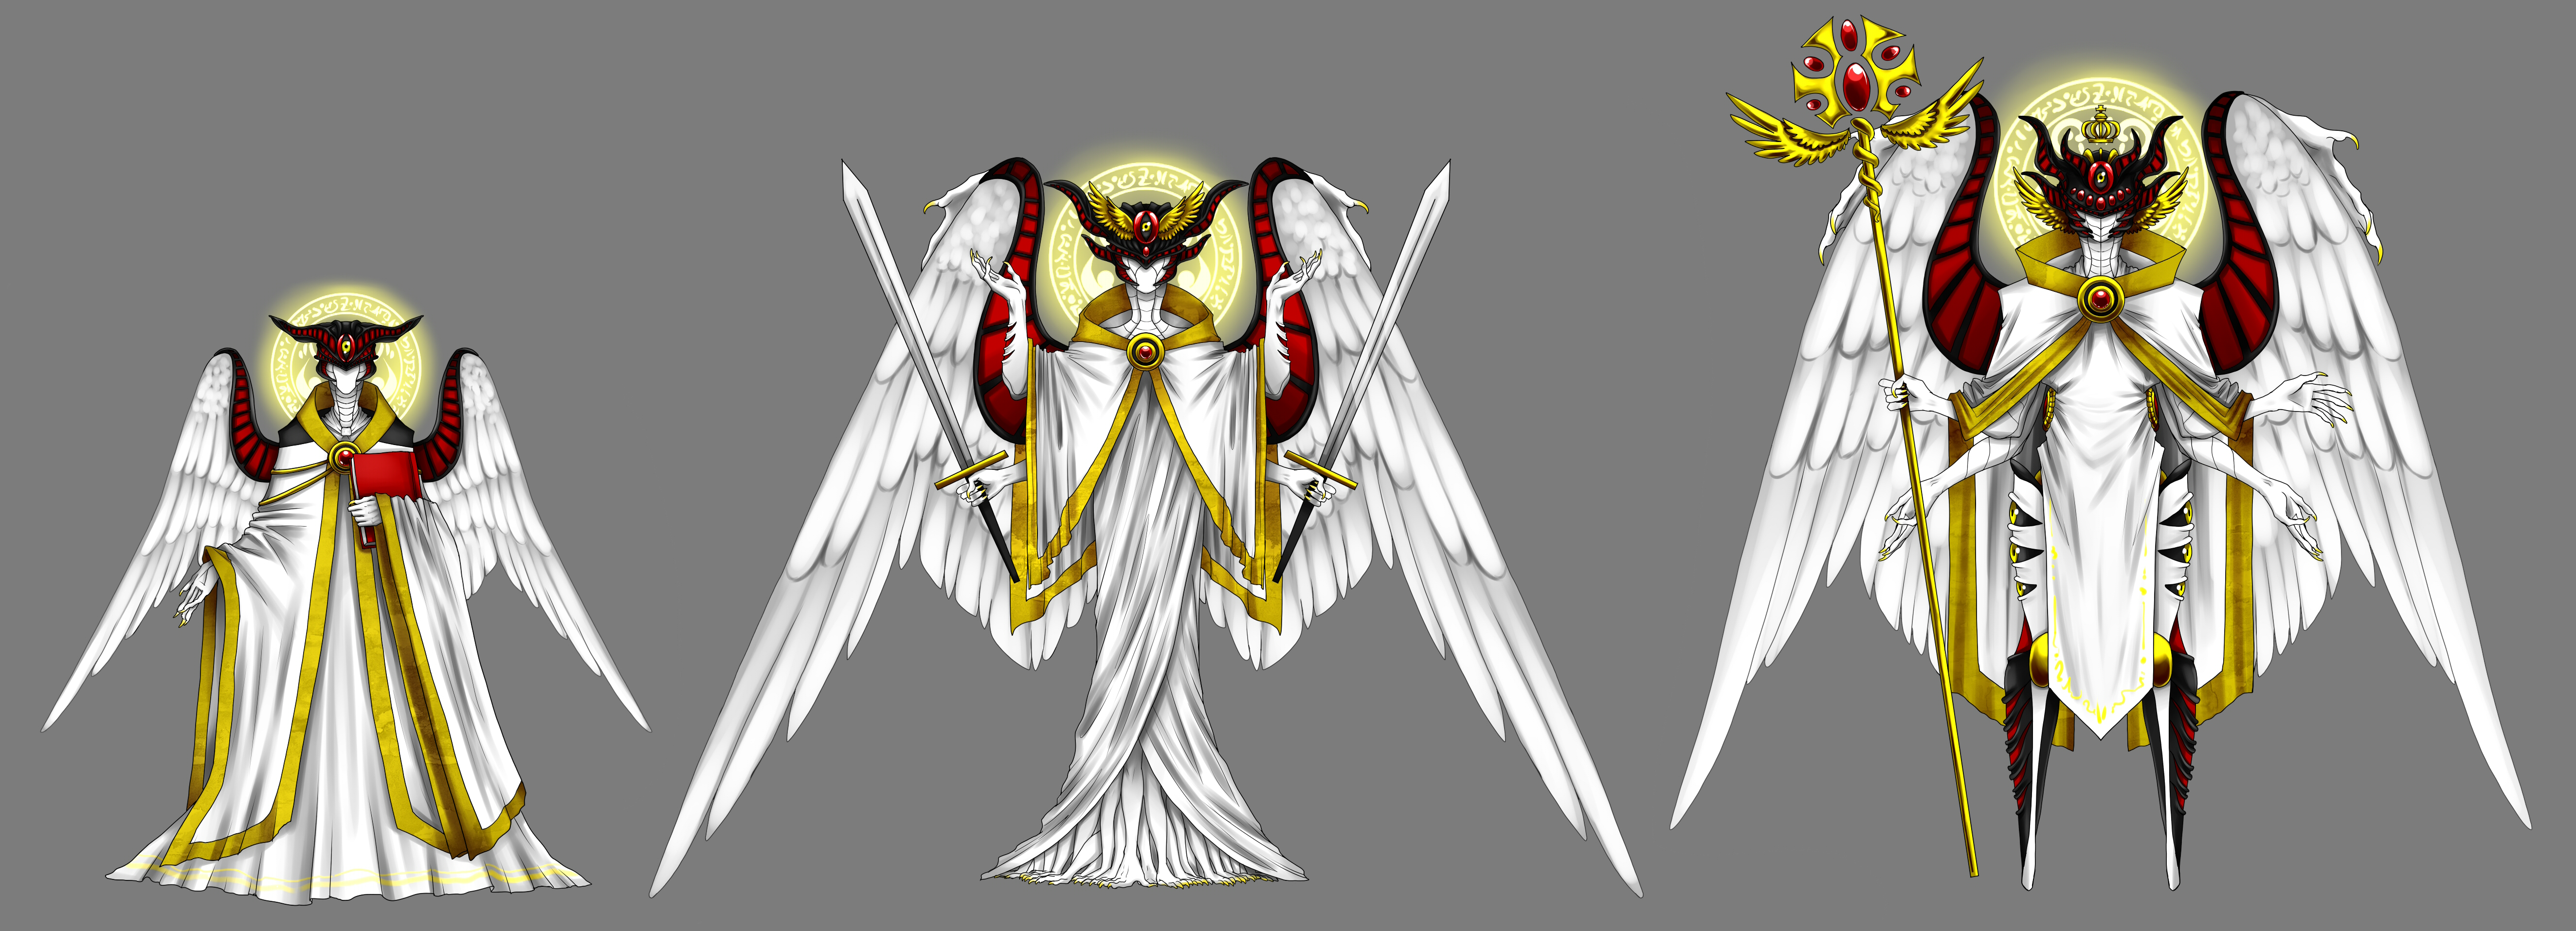 Angelic Ranks: Description, Hierarchy, and How Different Types Different From Each Other 67